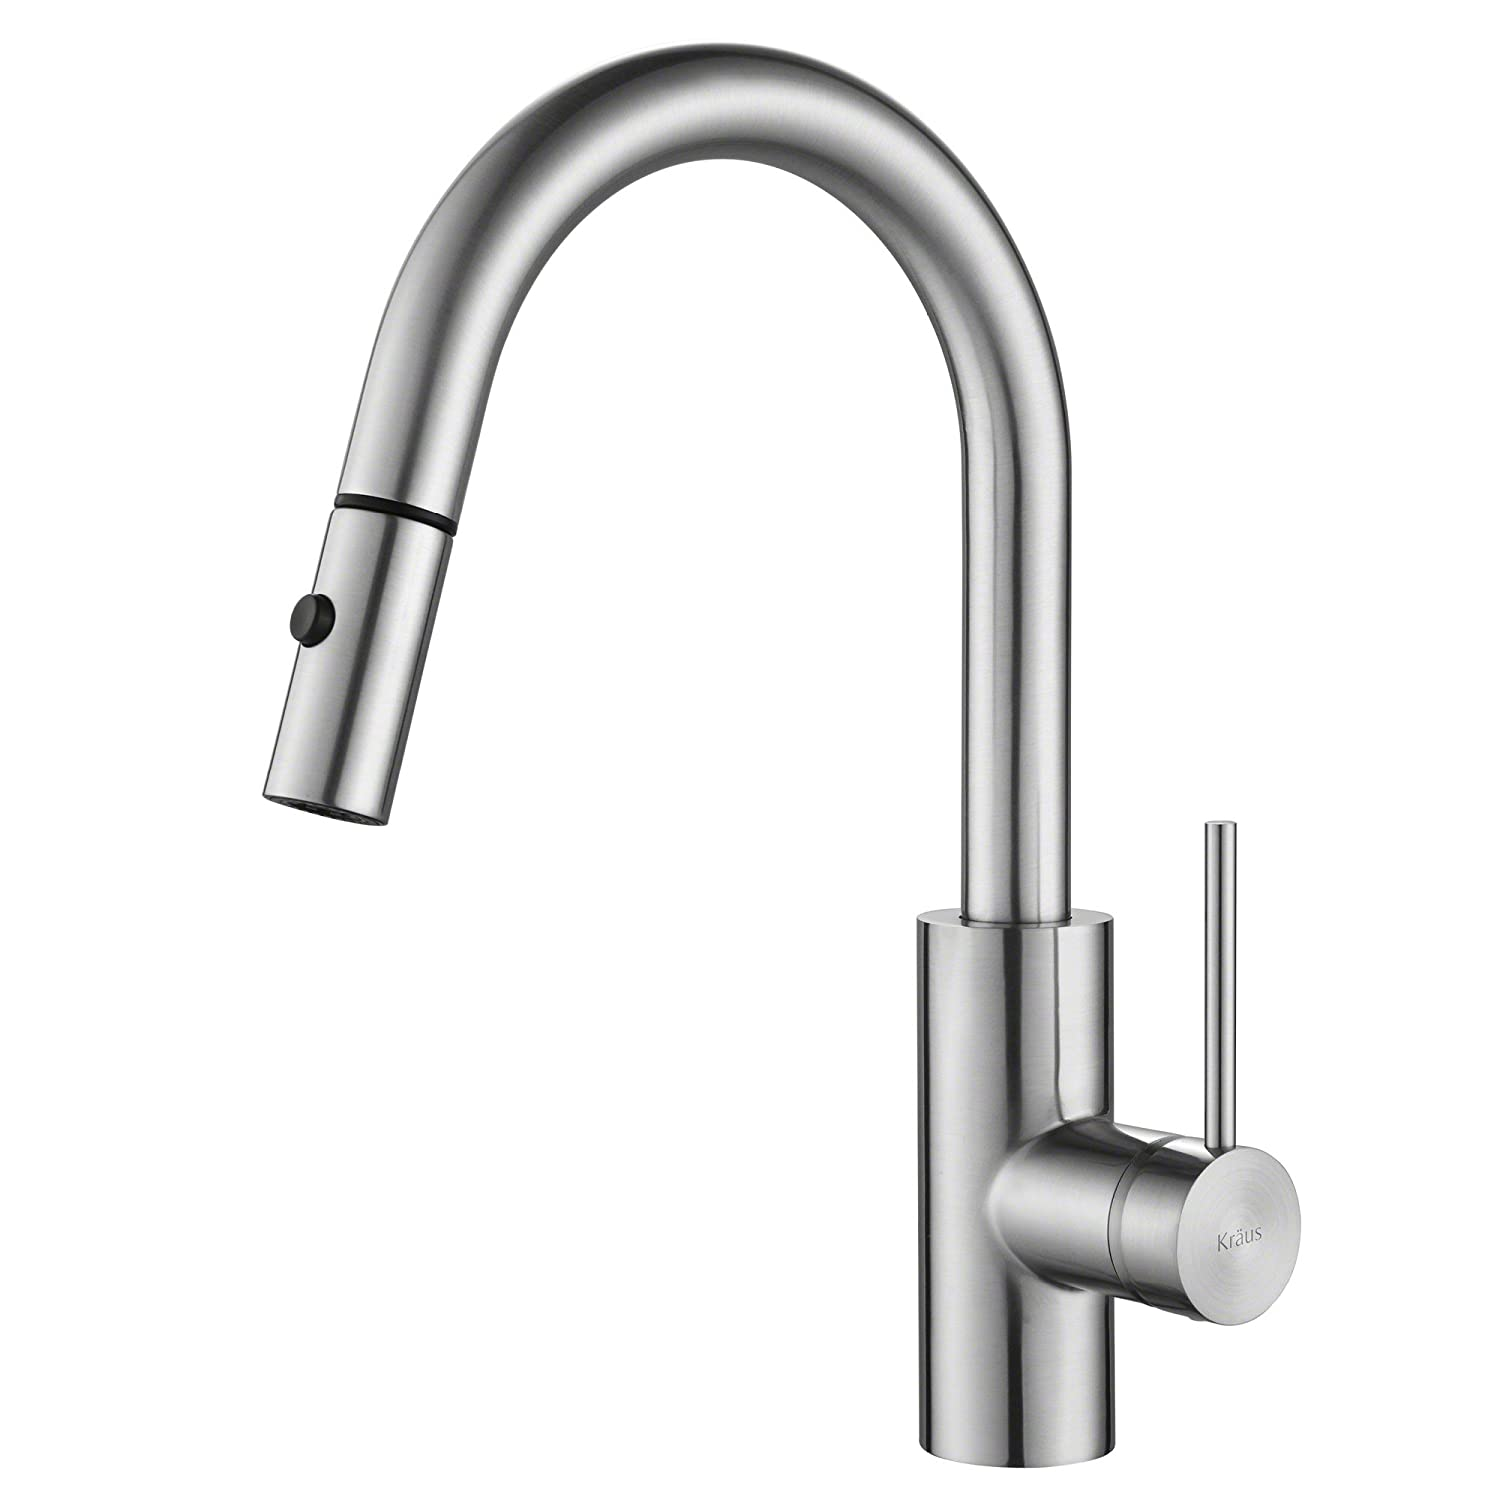 KRAUS Oletto Single Handle Pull Down Kitchen Faucet in Chrome Finish ...